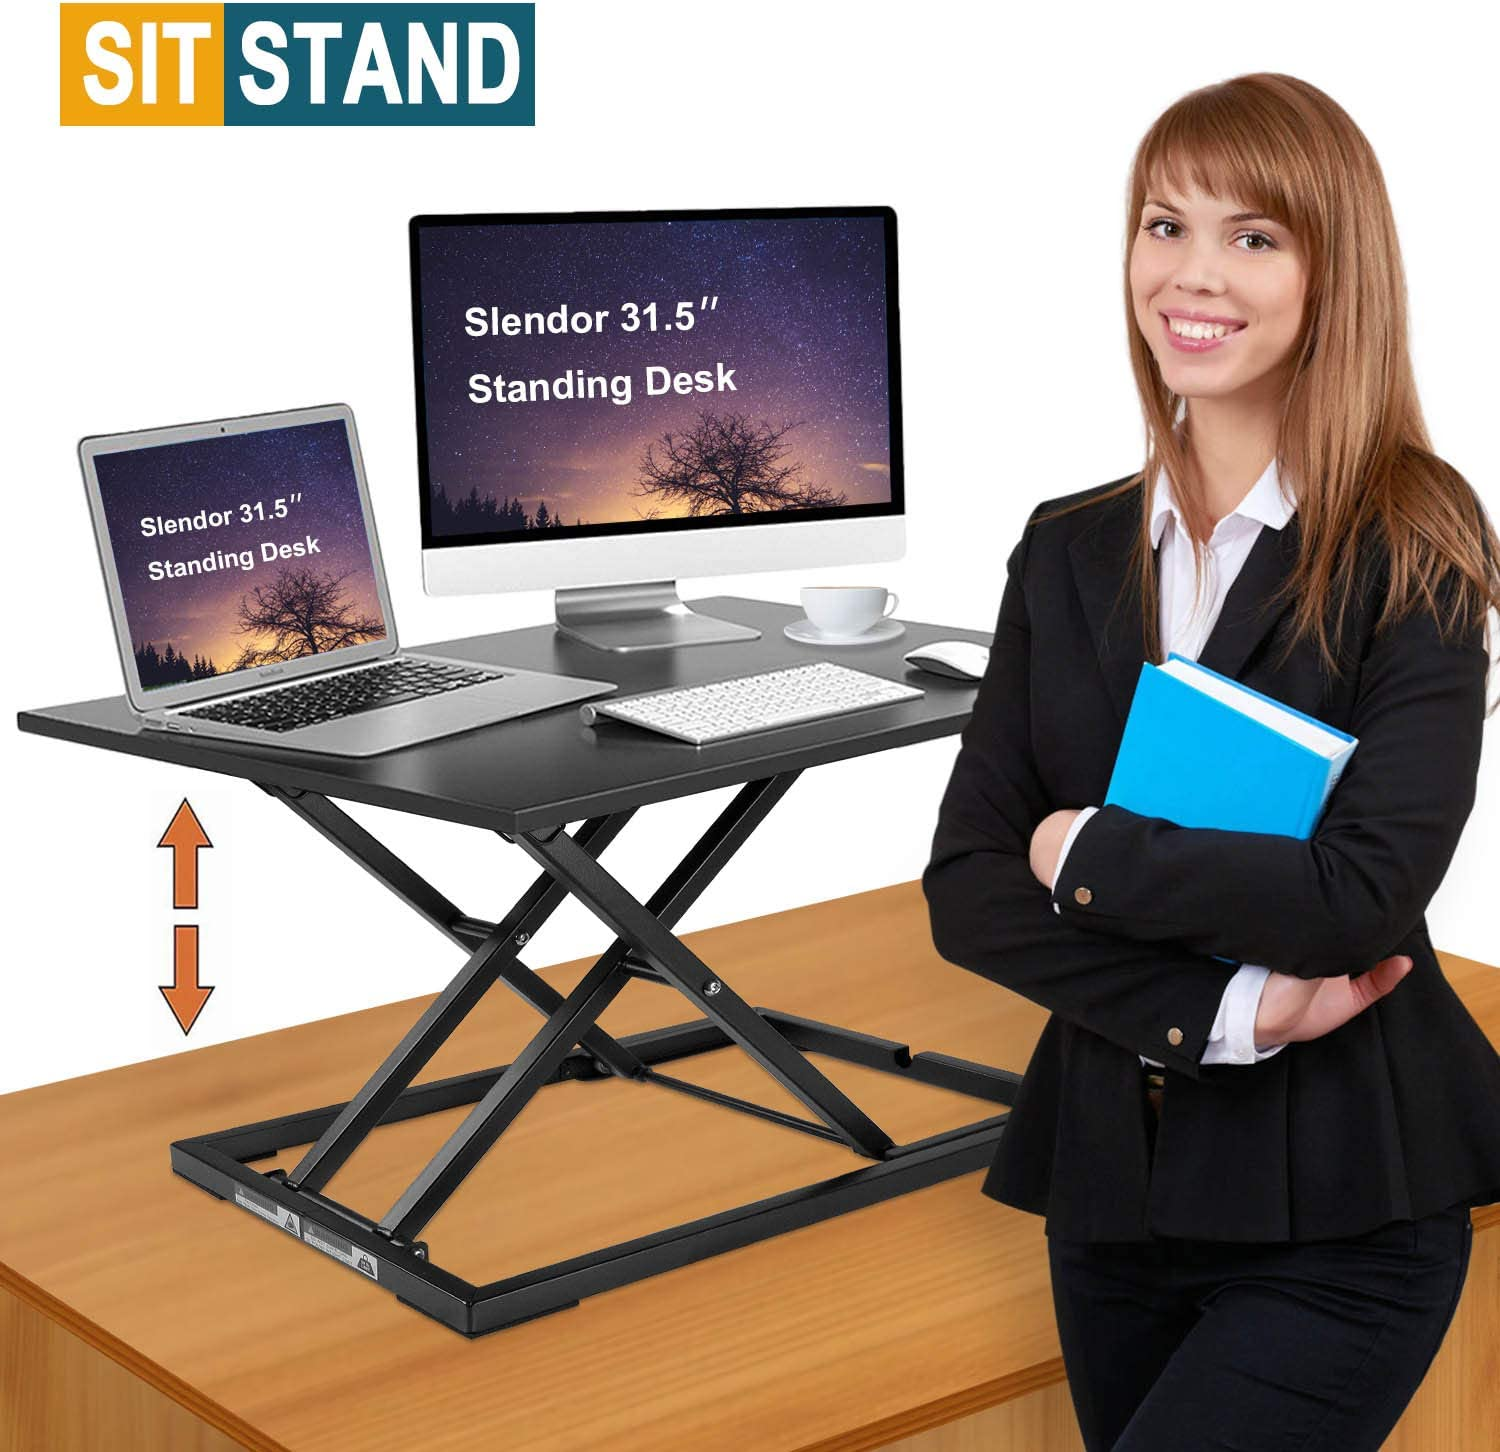 Slendor Standing Desk Stand Up Desks Height Adjustable 31.5 inch Sit Stand Converter Dual Monitor Ergonomic Air Riser Laptop Stands Large Rising Desktop Computer Table Workstation Foldable Home Office